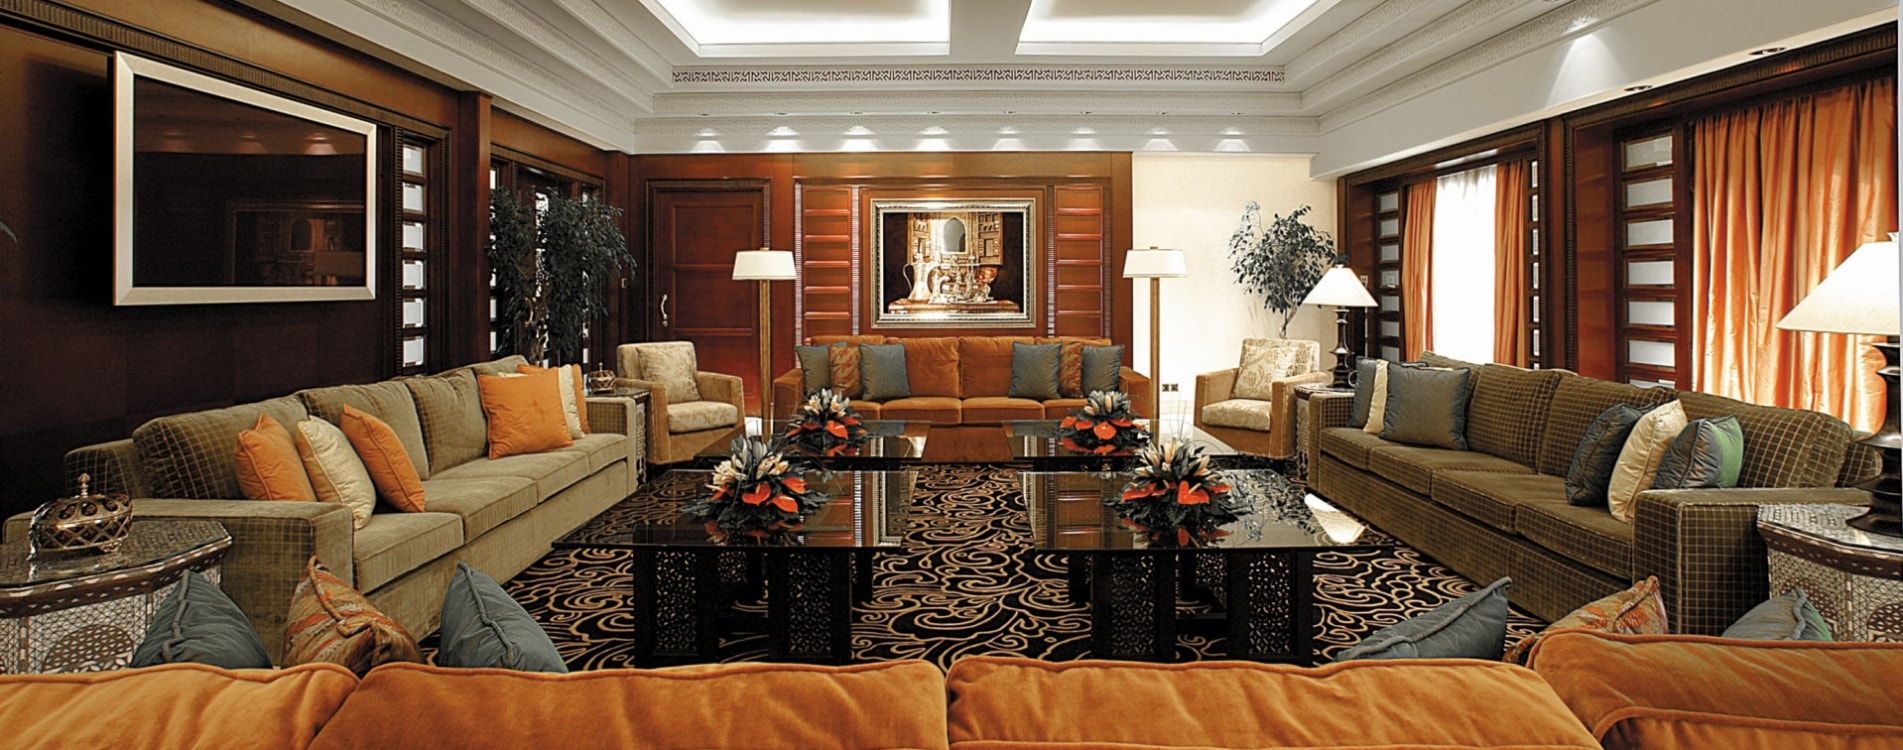 Shangri-La-Al-Husn-Resort-and-Spa-Al-Husn-Royal-Suite-Wohnzimmer-Oman.jpg